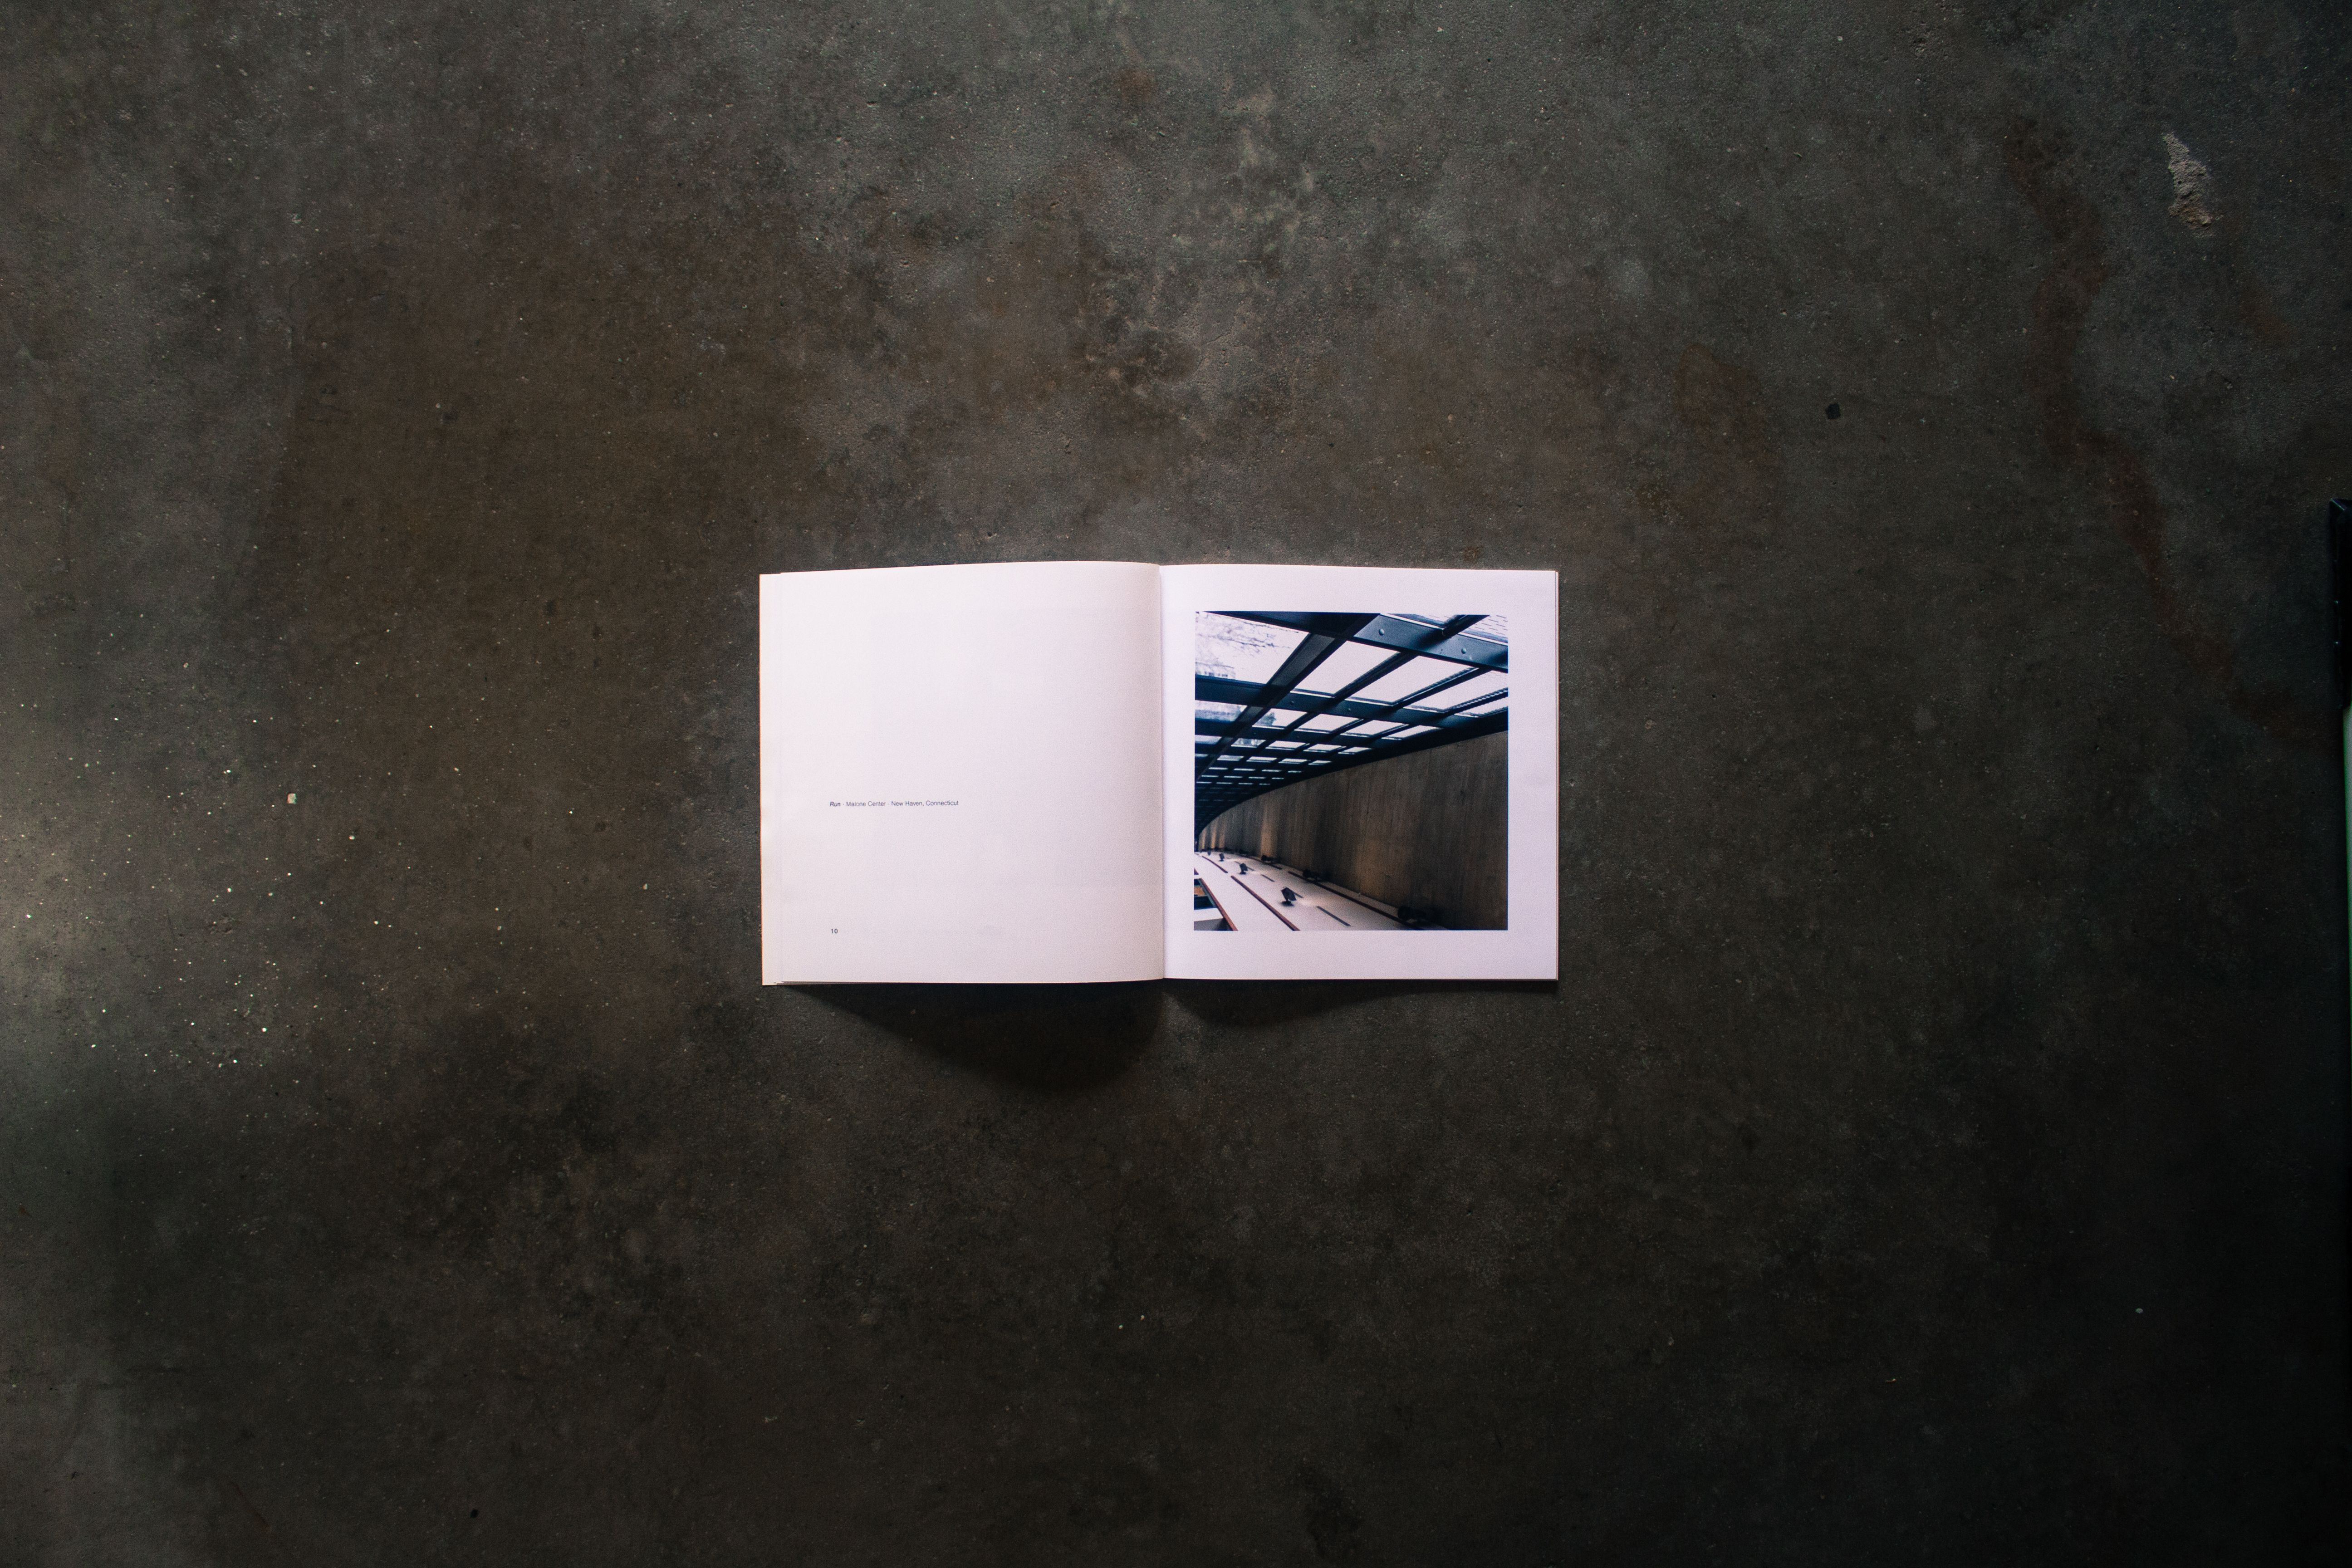 Pages from UP showing an architectural photo of a building.